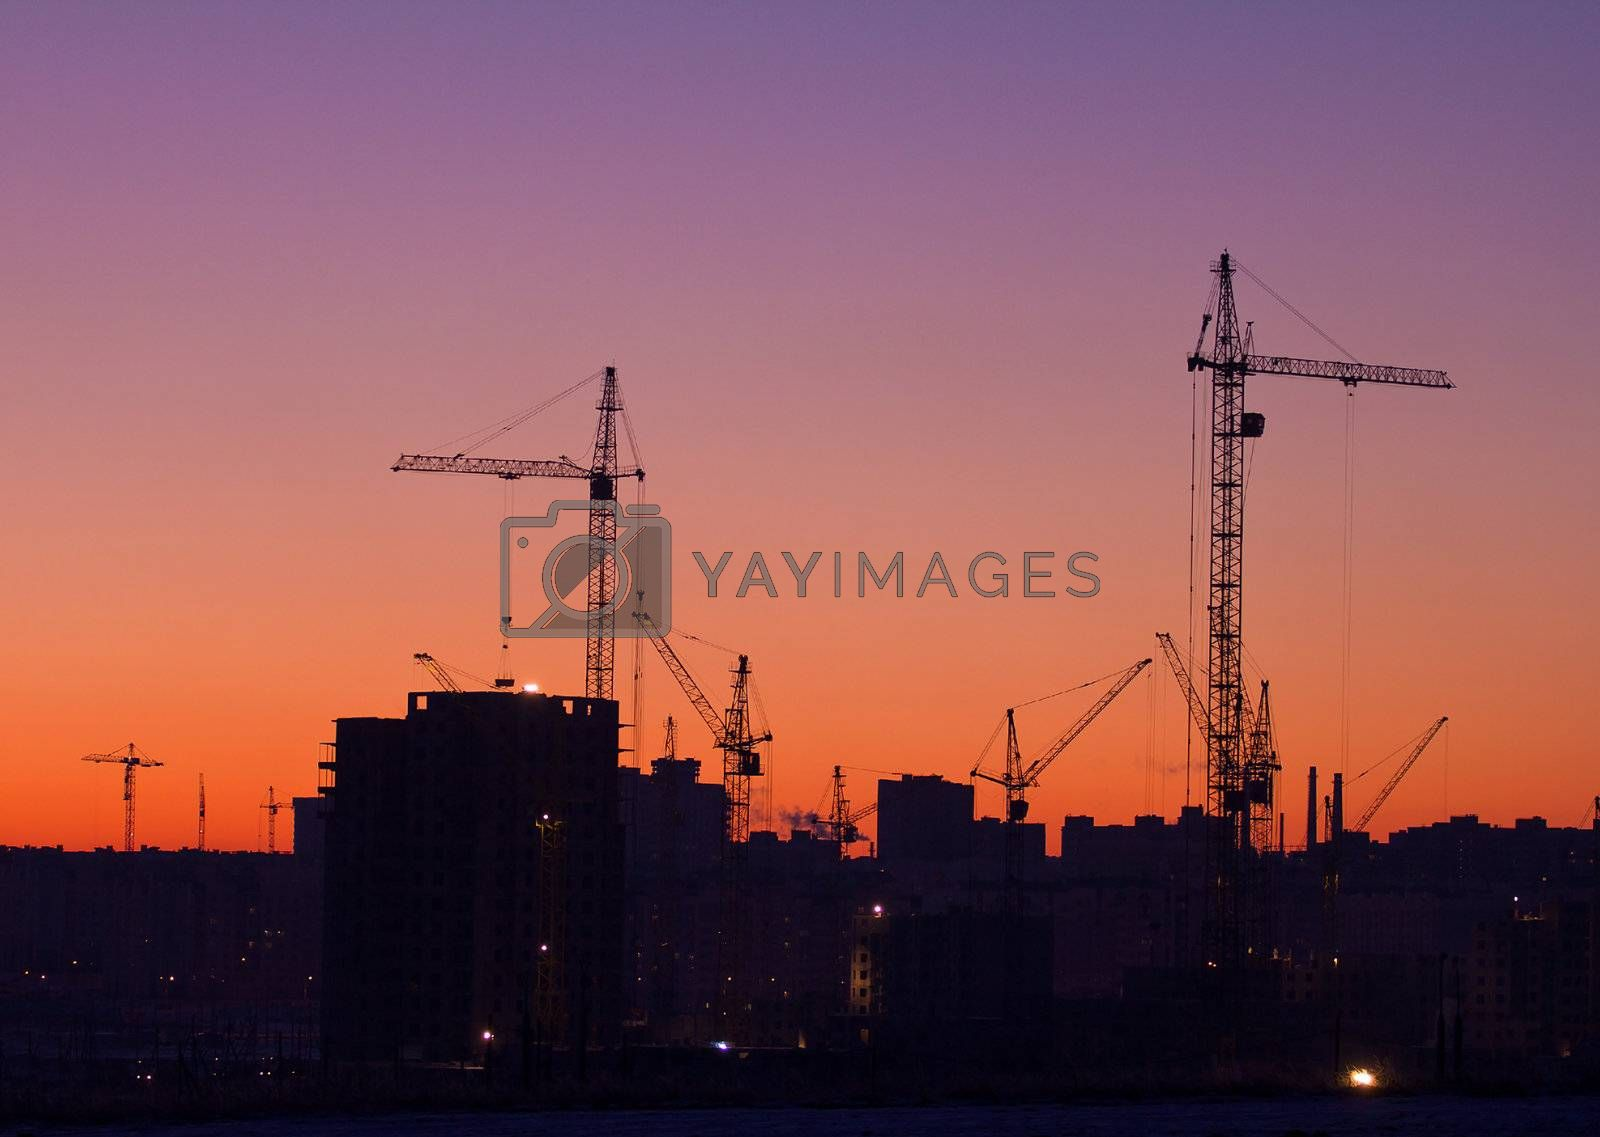 city under construction by Alekcey